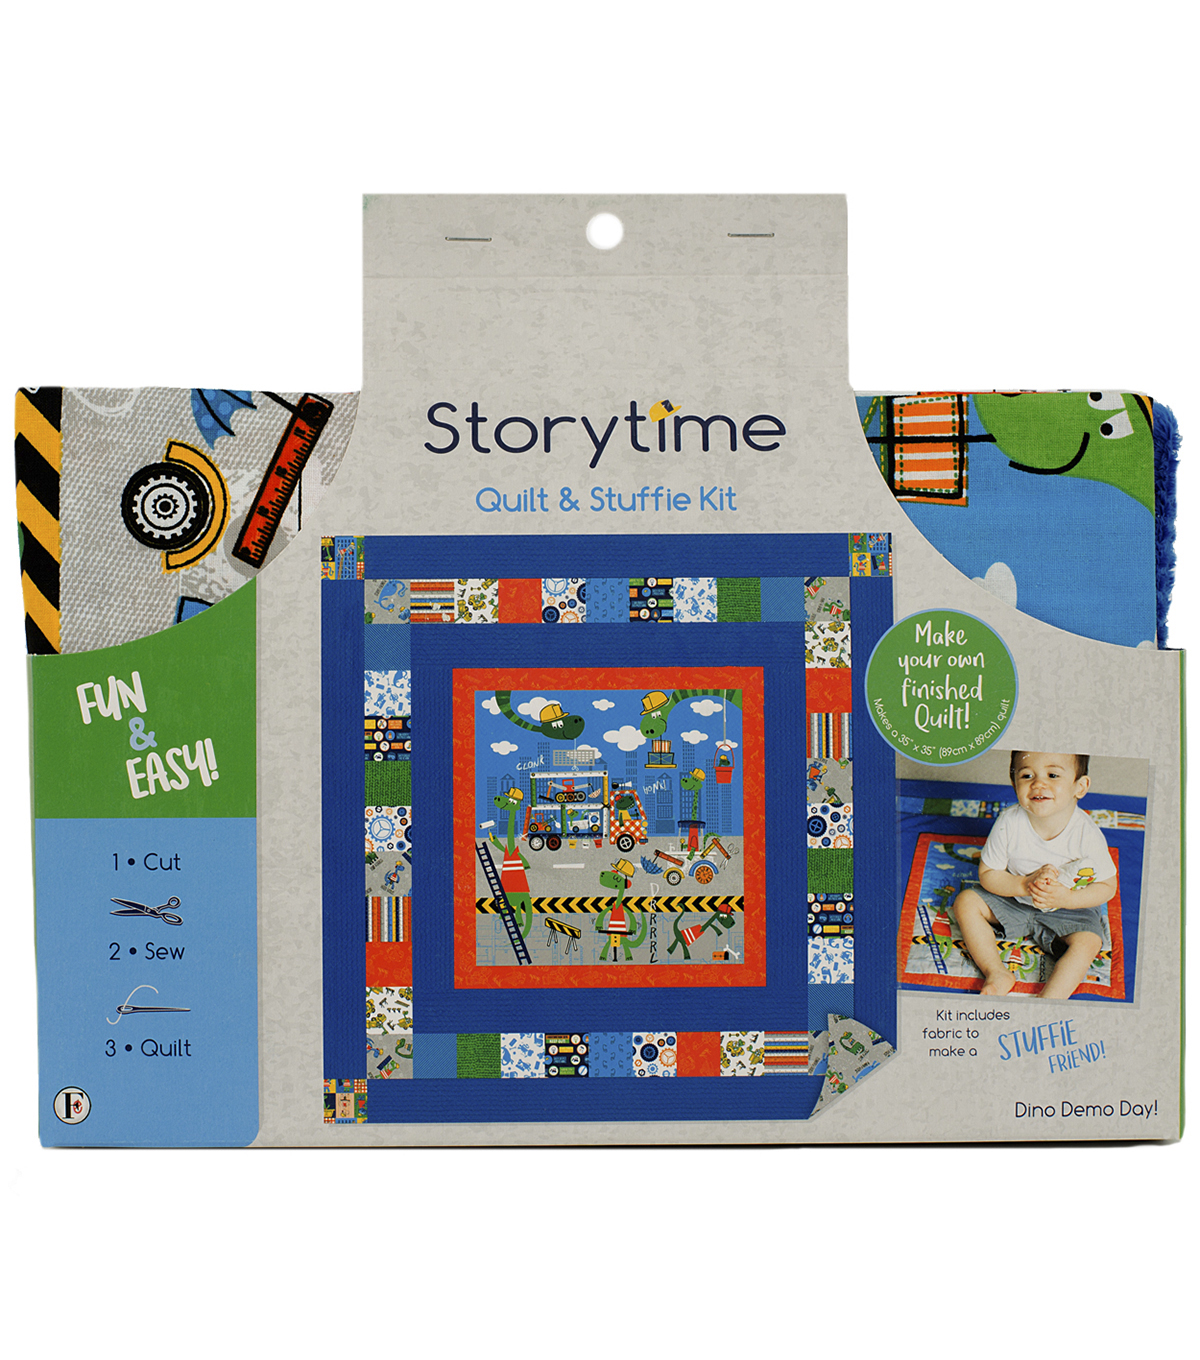 Storytime Quilt & Stuffie Kit-Dino Demo Day